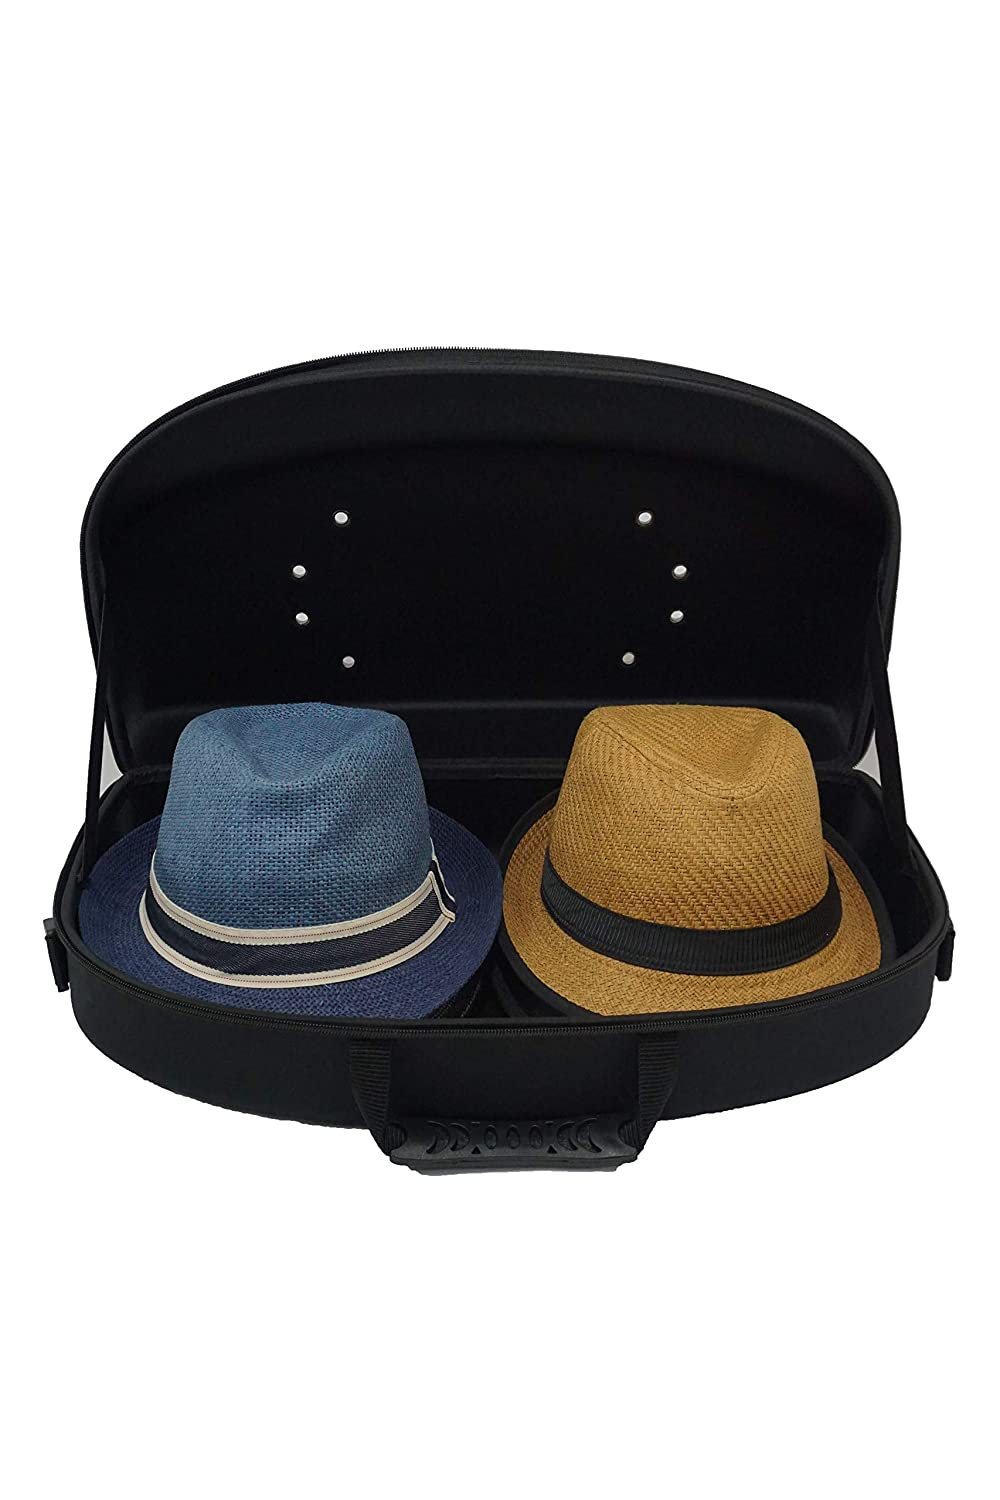 9c6b219bc9dde Amazon.com  Hat Carrier Cap Case Organizer for Travel and Storage for  Baseball Cap and Fedora Style Hats  Joshmin